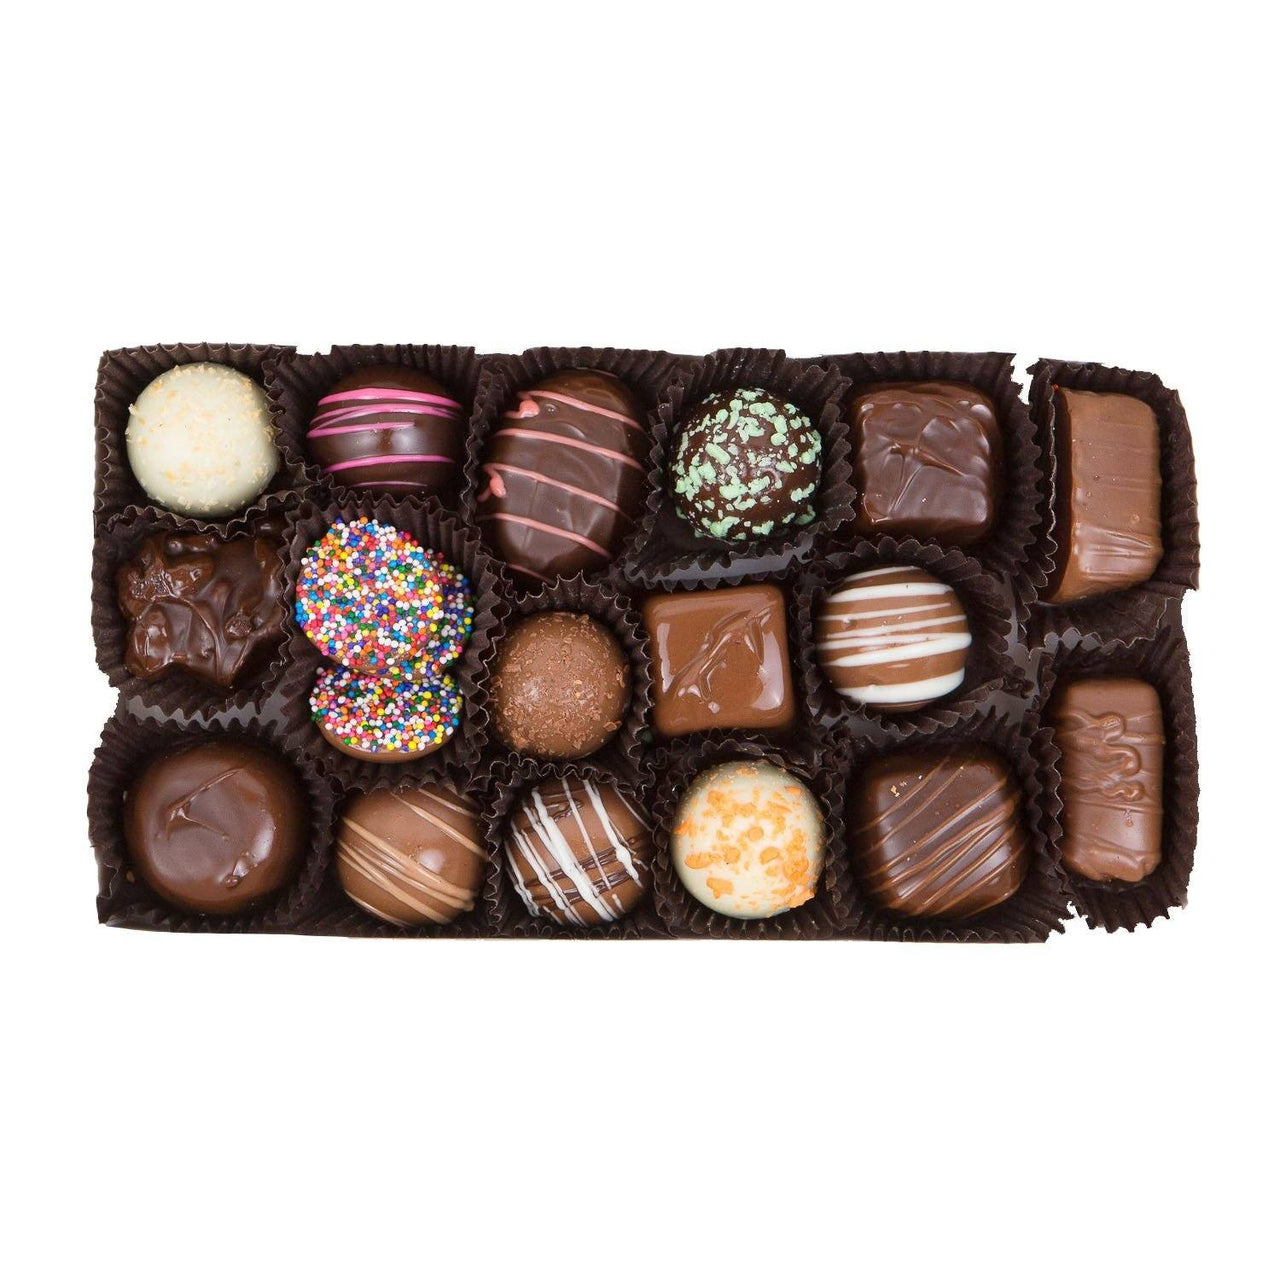 White Elephant Christmas - Chocolate Assortment Gift Box - Jackie's Chocolate (4336366714995)